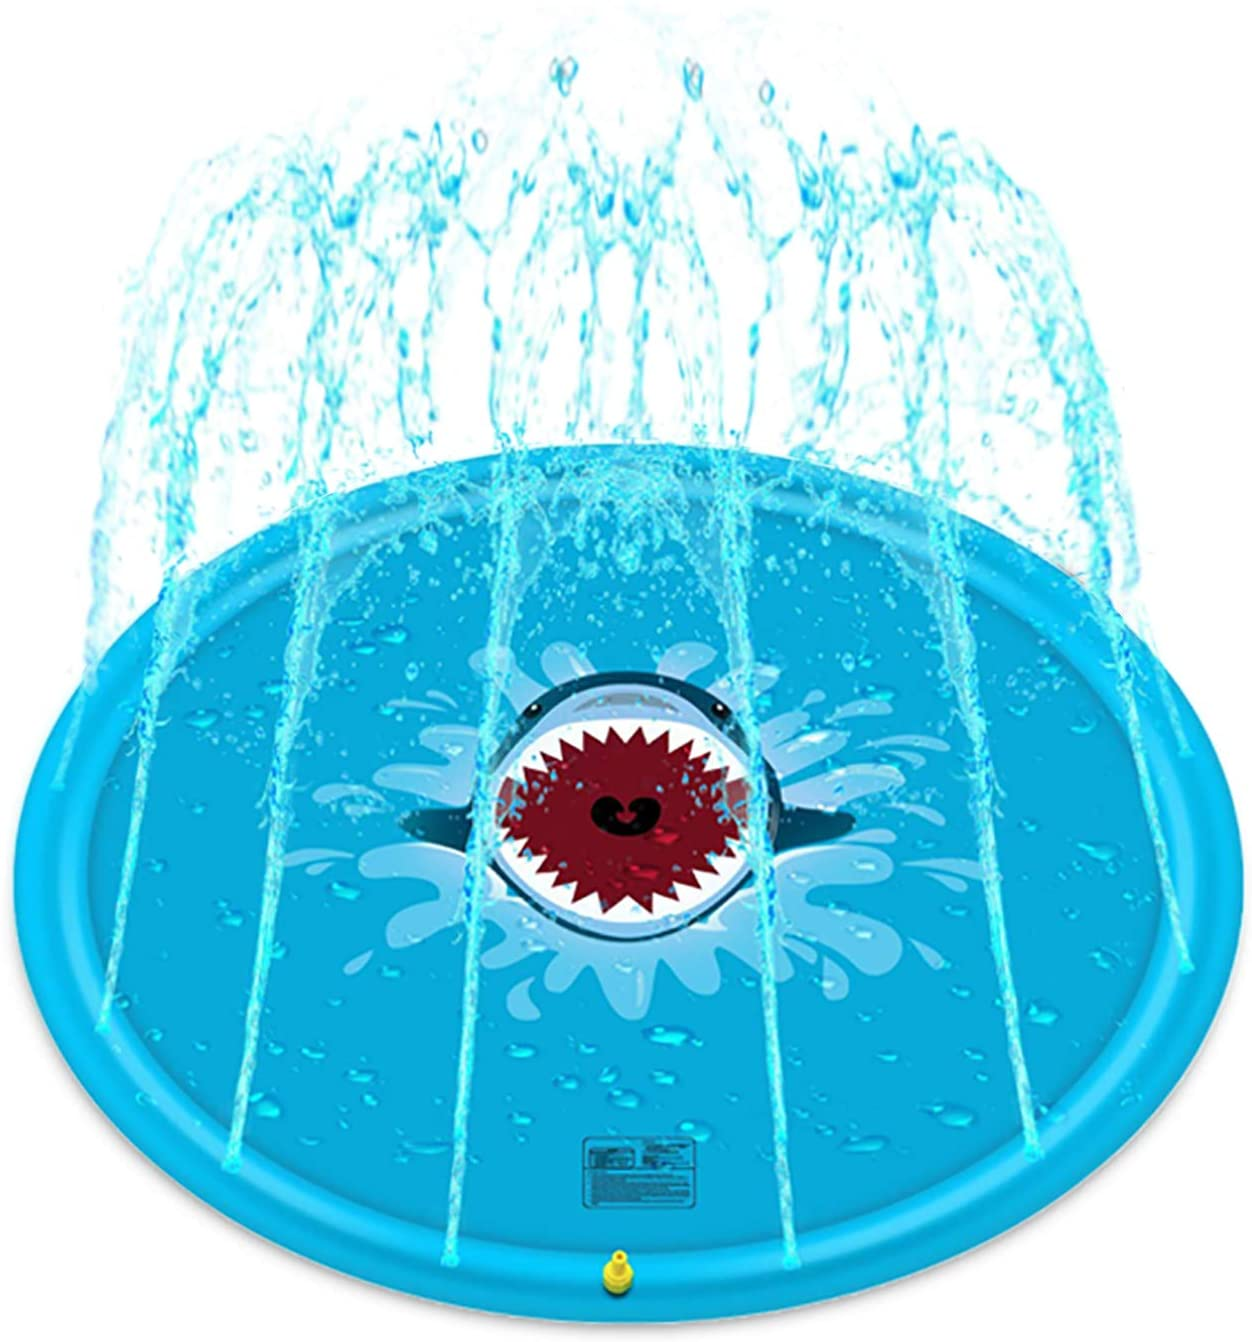 Splash Pad, Sprinkler for Kids, Inflatable Sprinkler Pad Water Toys, Outdoor Swimming Toys Large Wading Pool for Toddler and Baby (Blue Shark, 68 Inch)